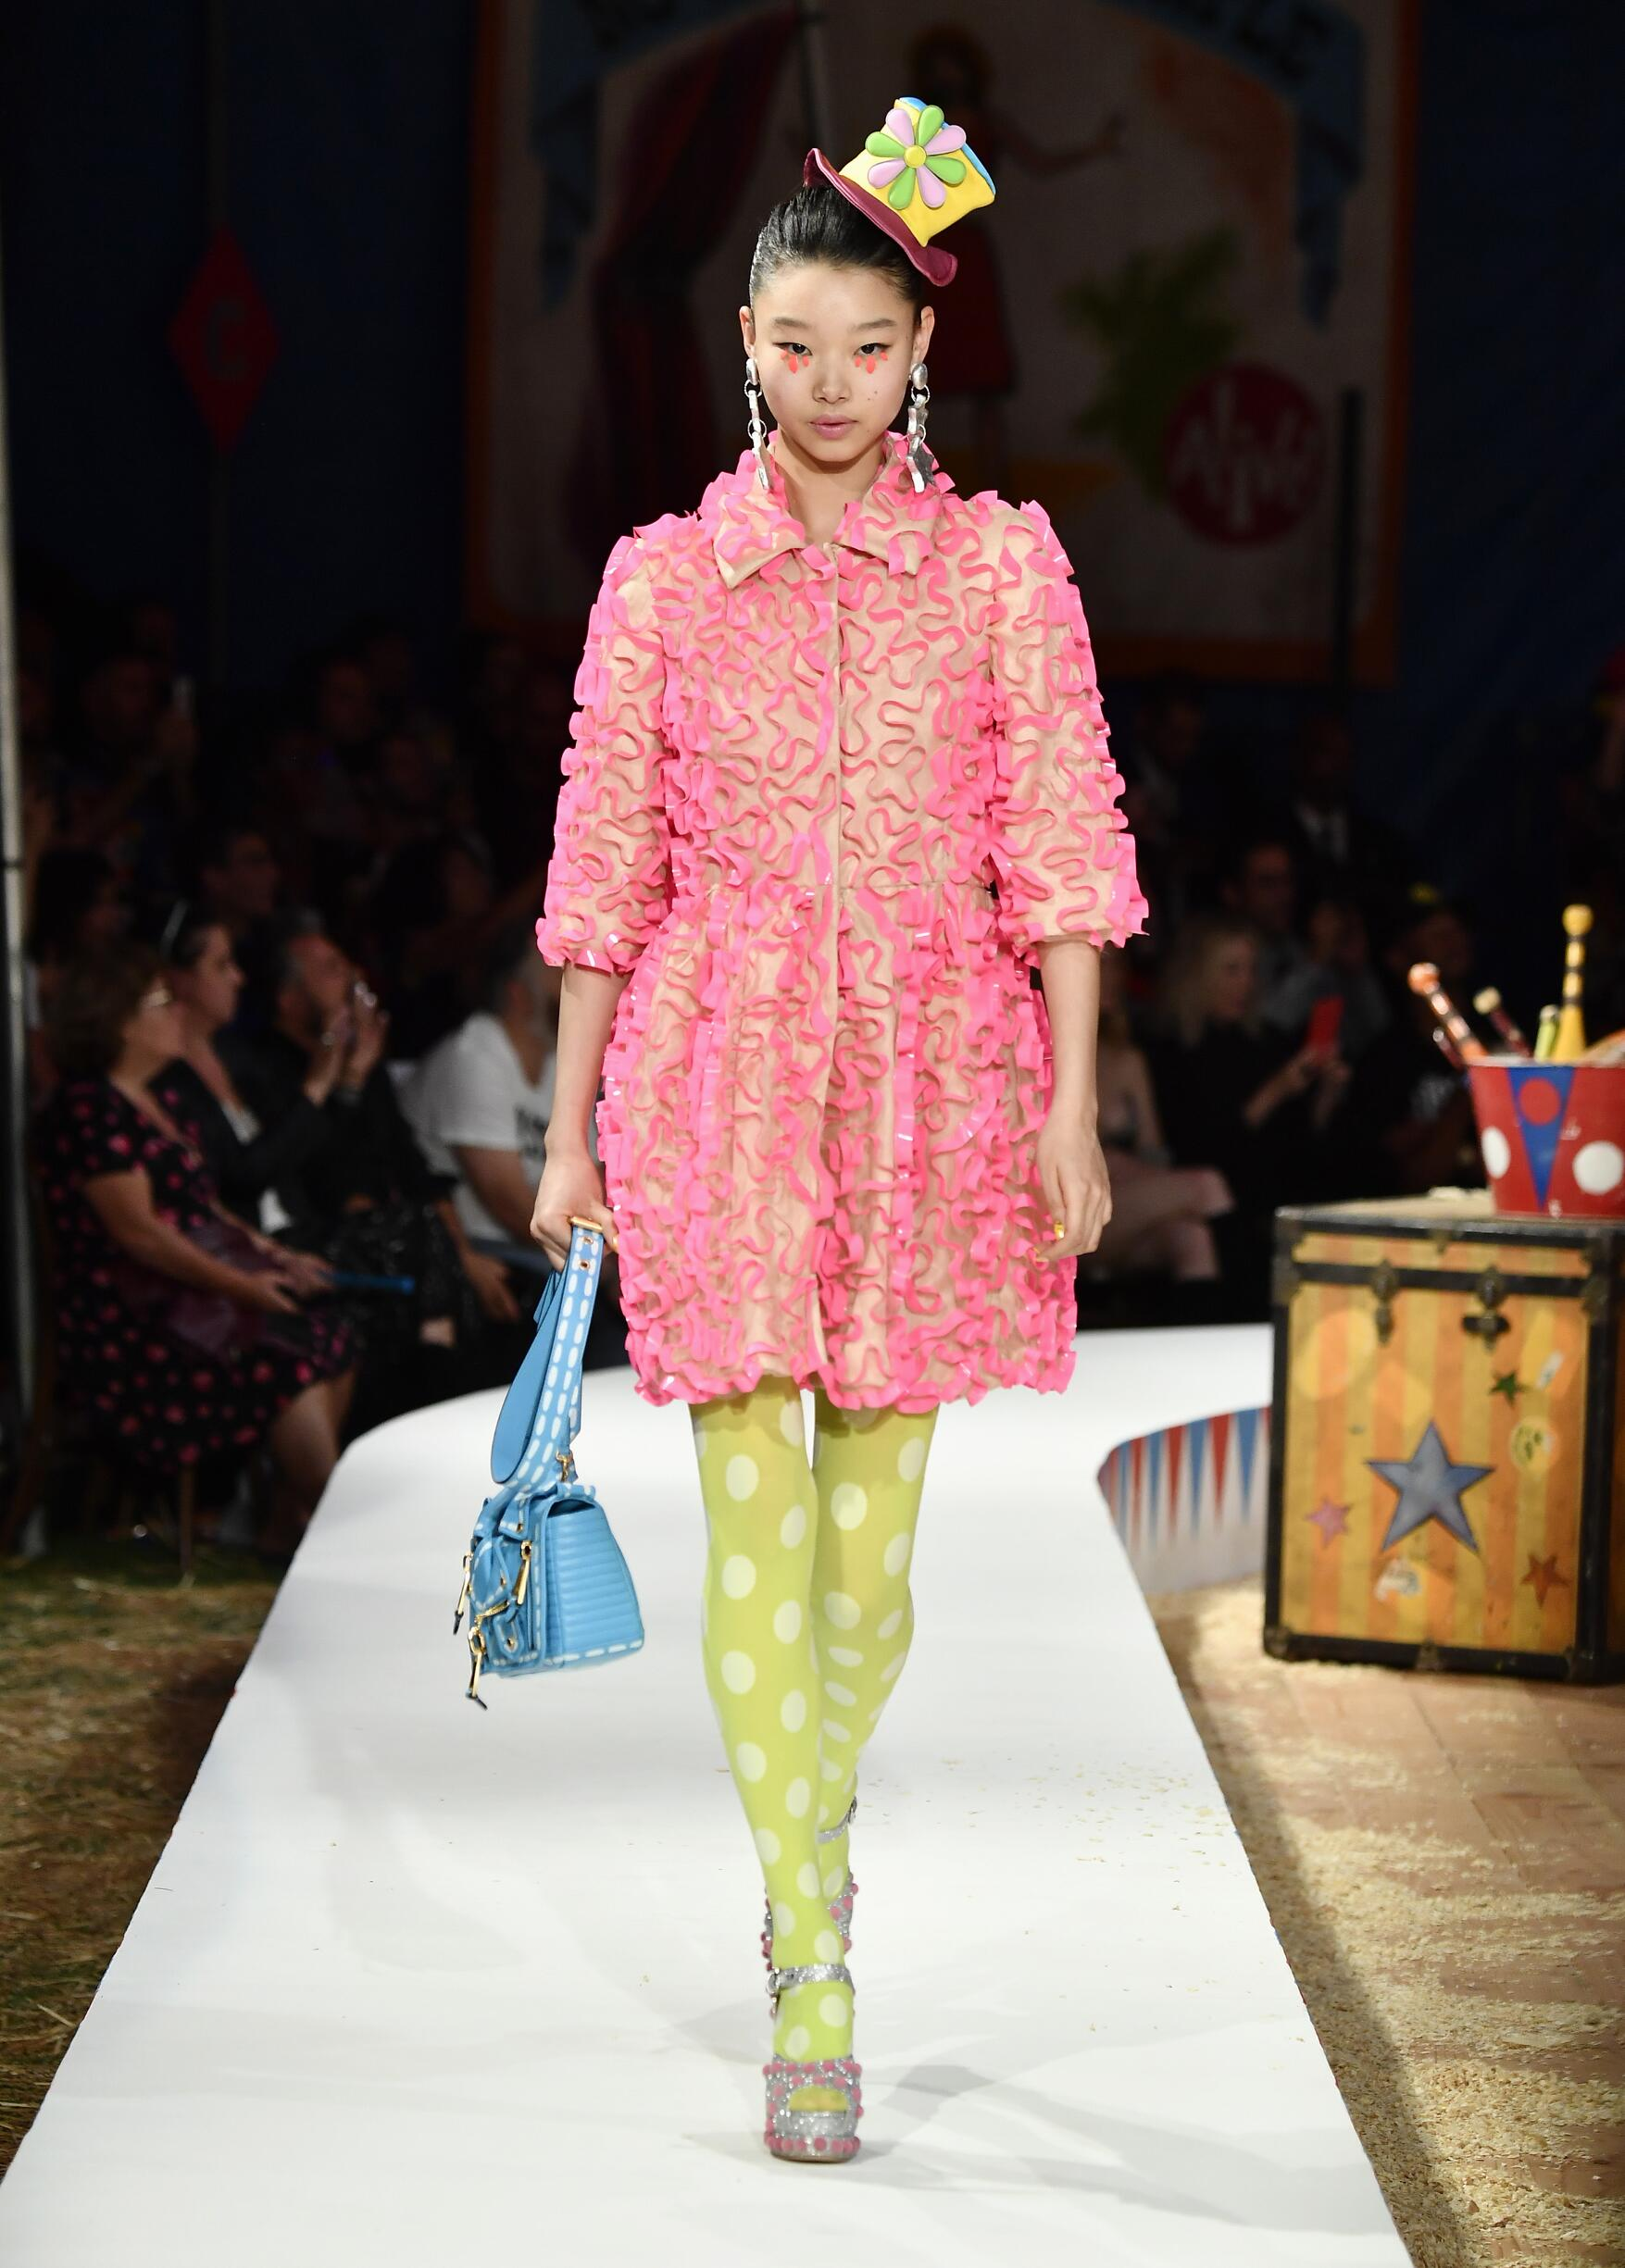 Moschino Spring Summer 2019 Menswear and Women's Resort Collection Look 11 Los Angeles